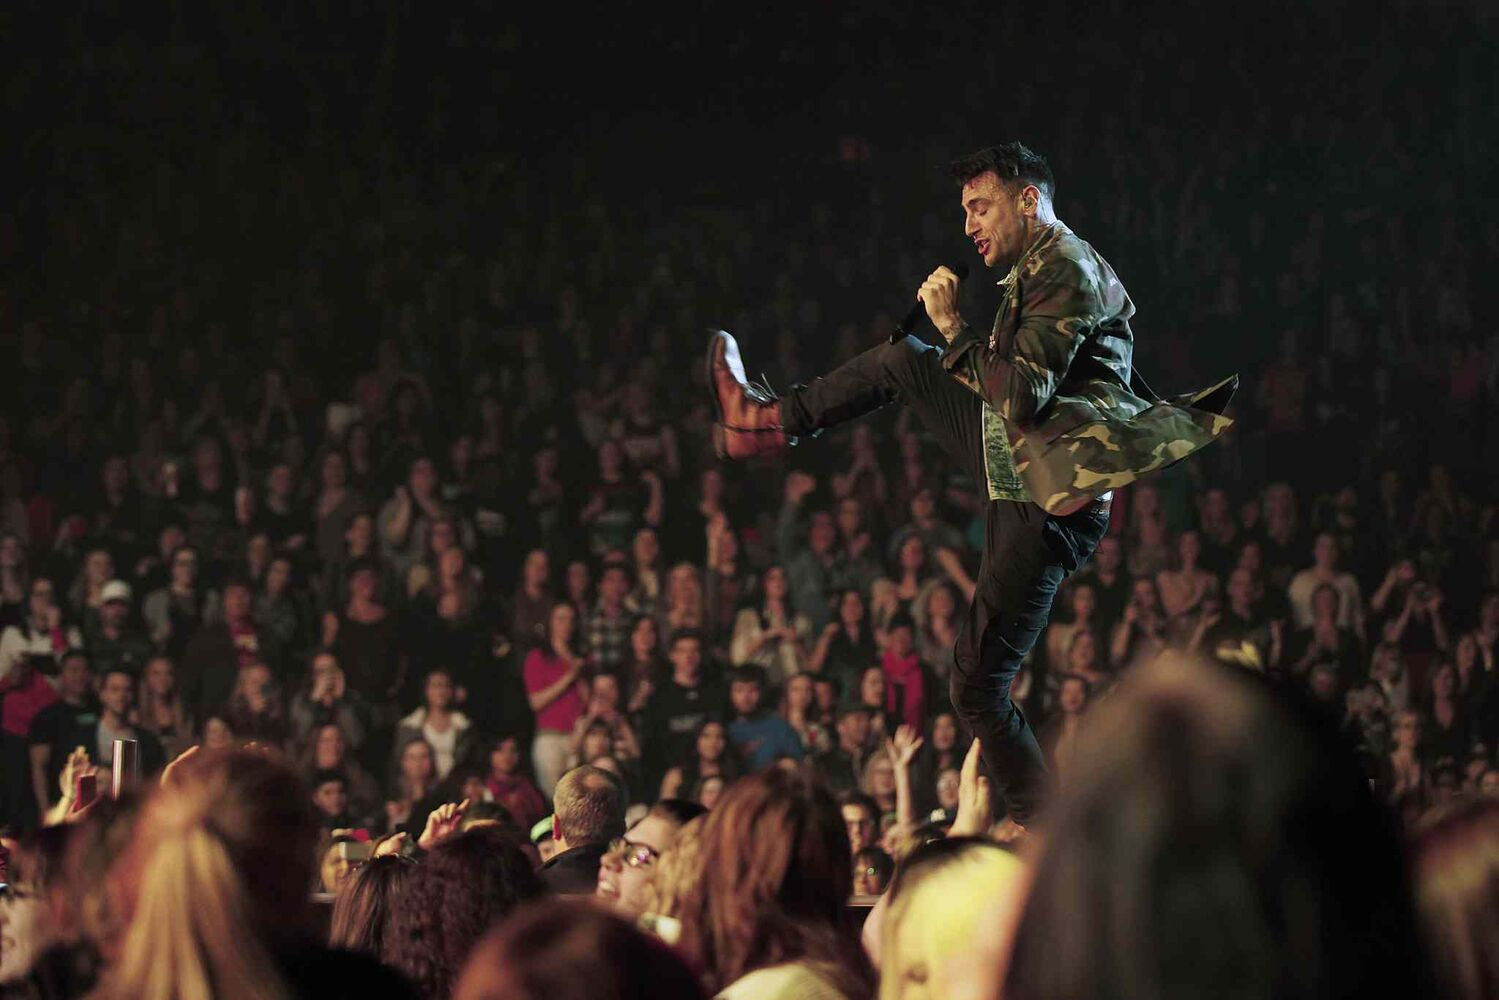 Hedley lead singer Jacob Hoggard gives a high-energy performance at the MTS Centre Tuesday. (John Woods / Winnipeg Free Press)